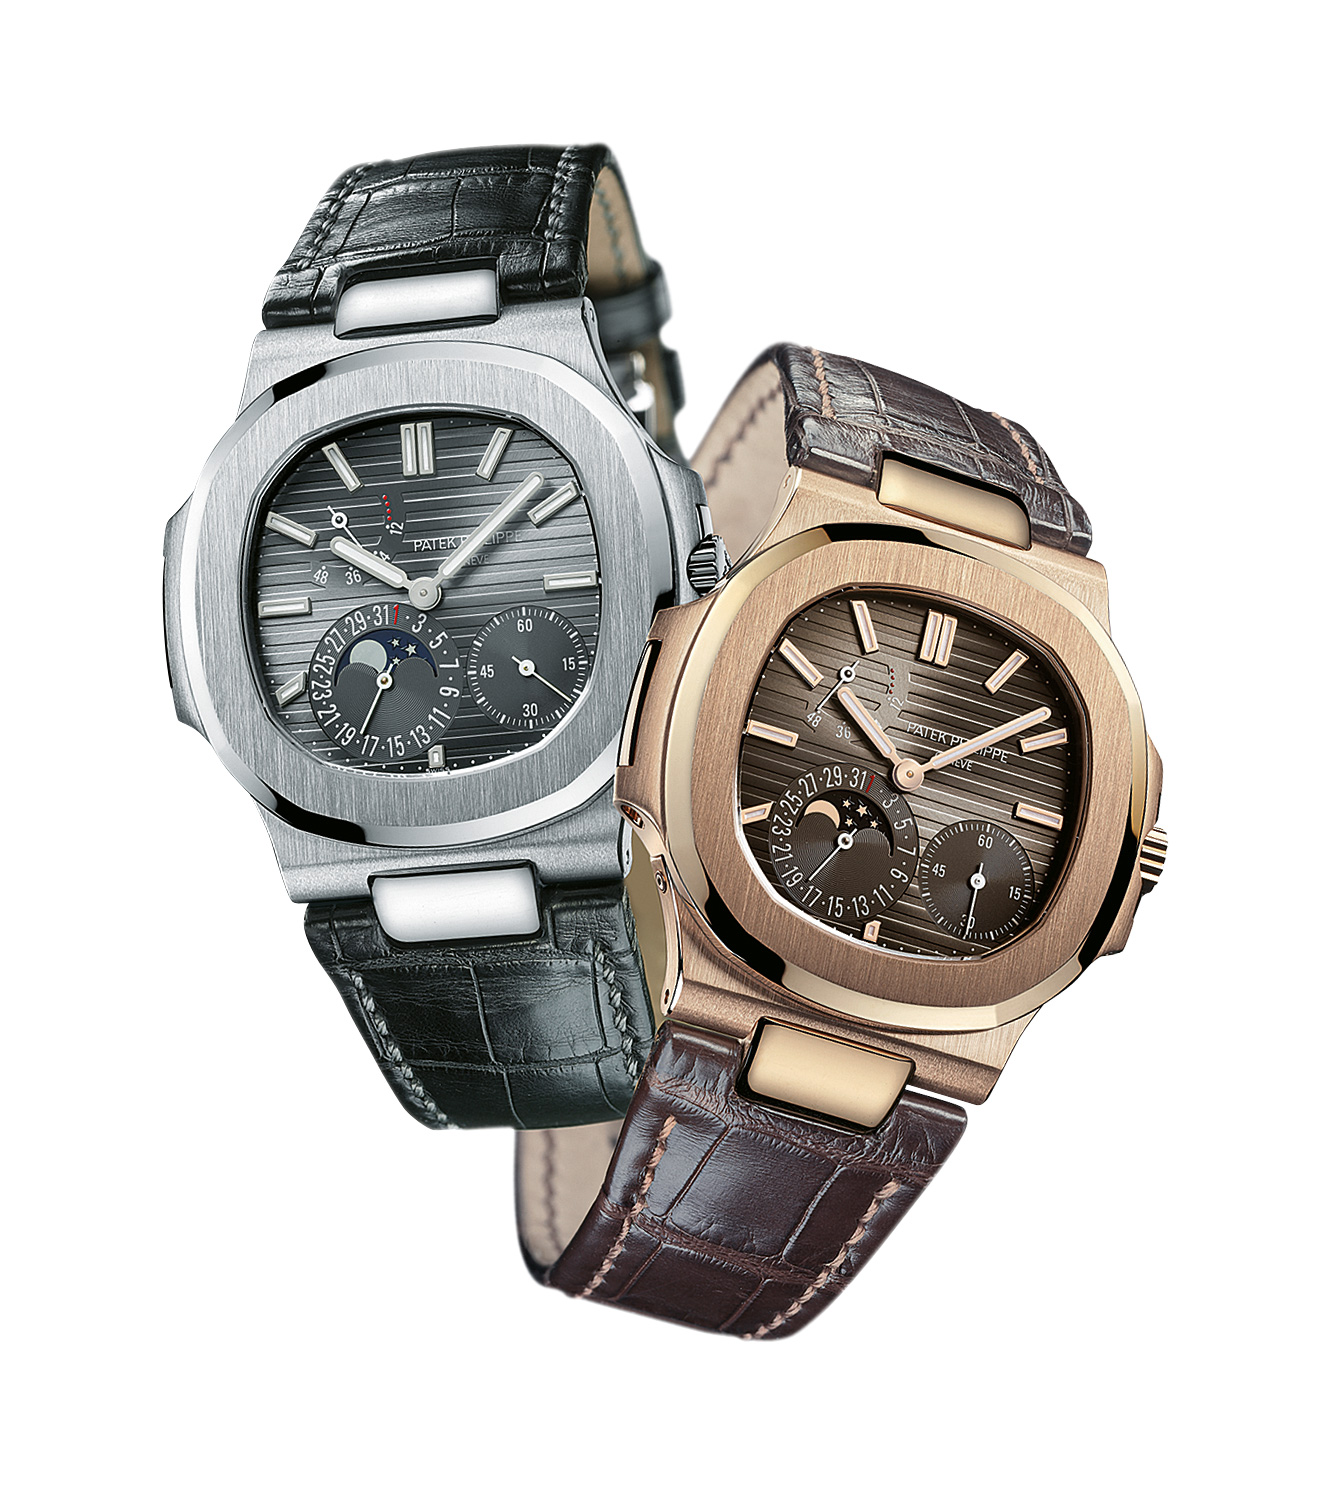 P Philippe Watch Luxury In Steel A History Of The Patek Philippe Nautilus